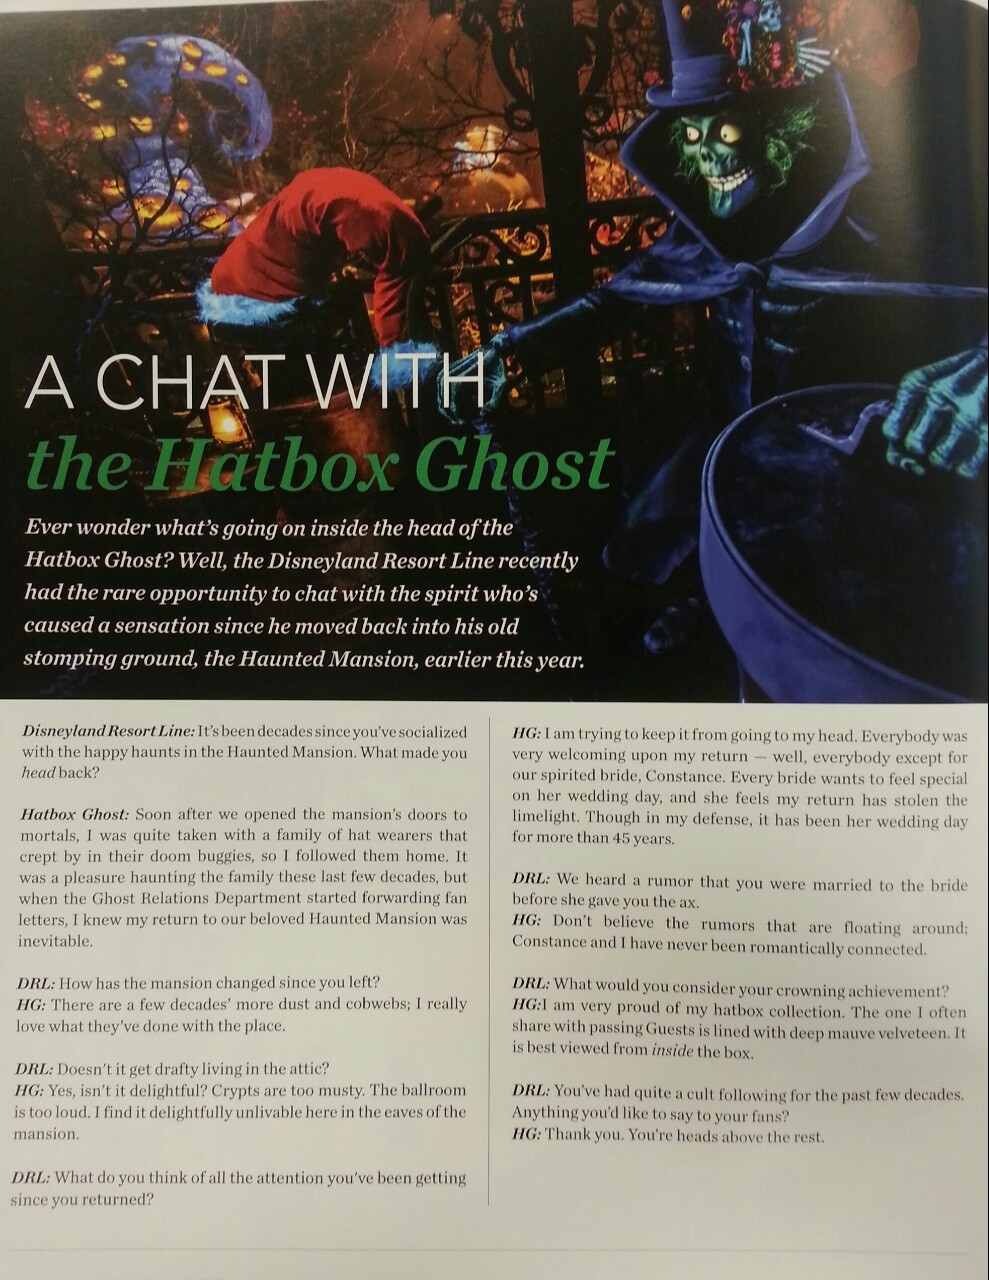 A Chat with the Hatbox Ghost